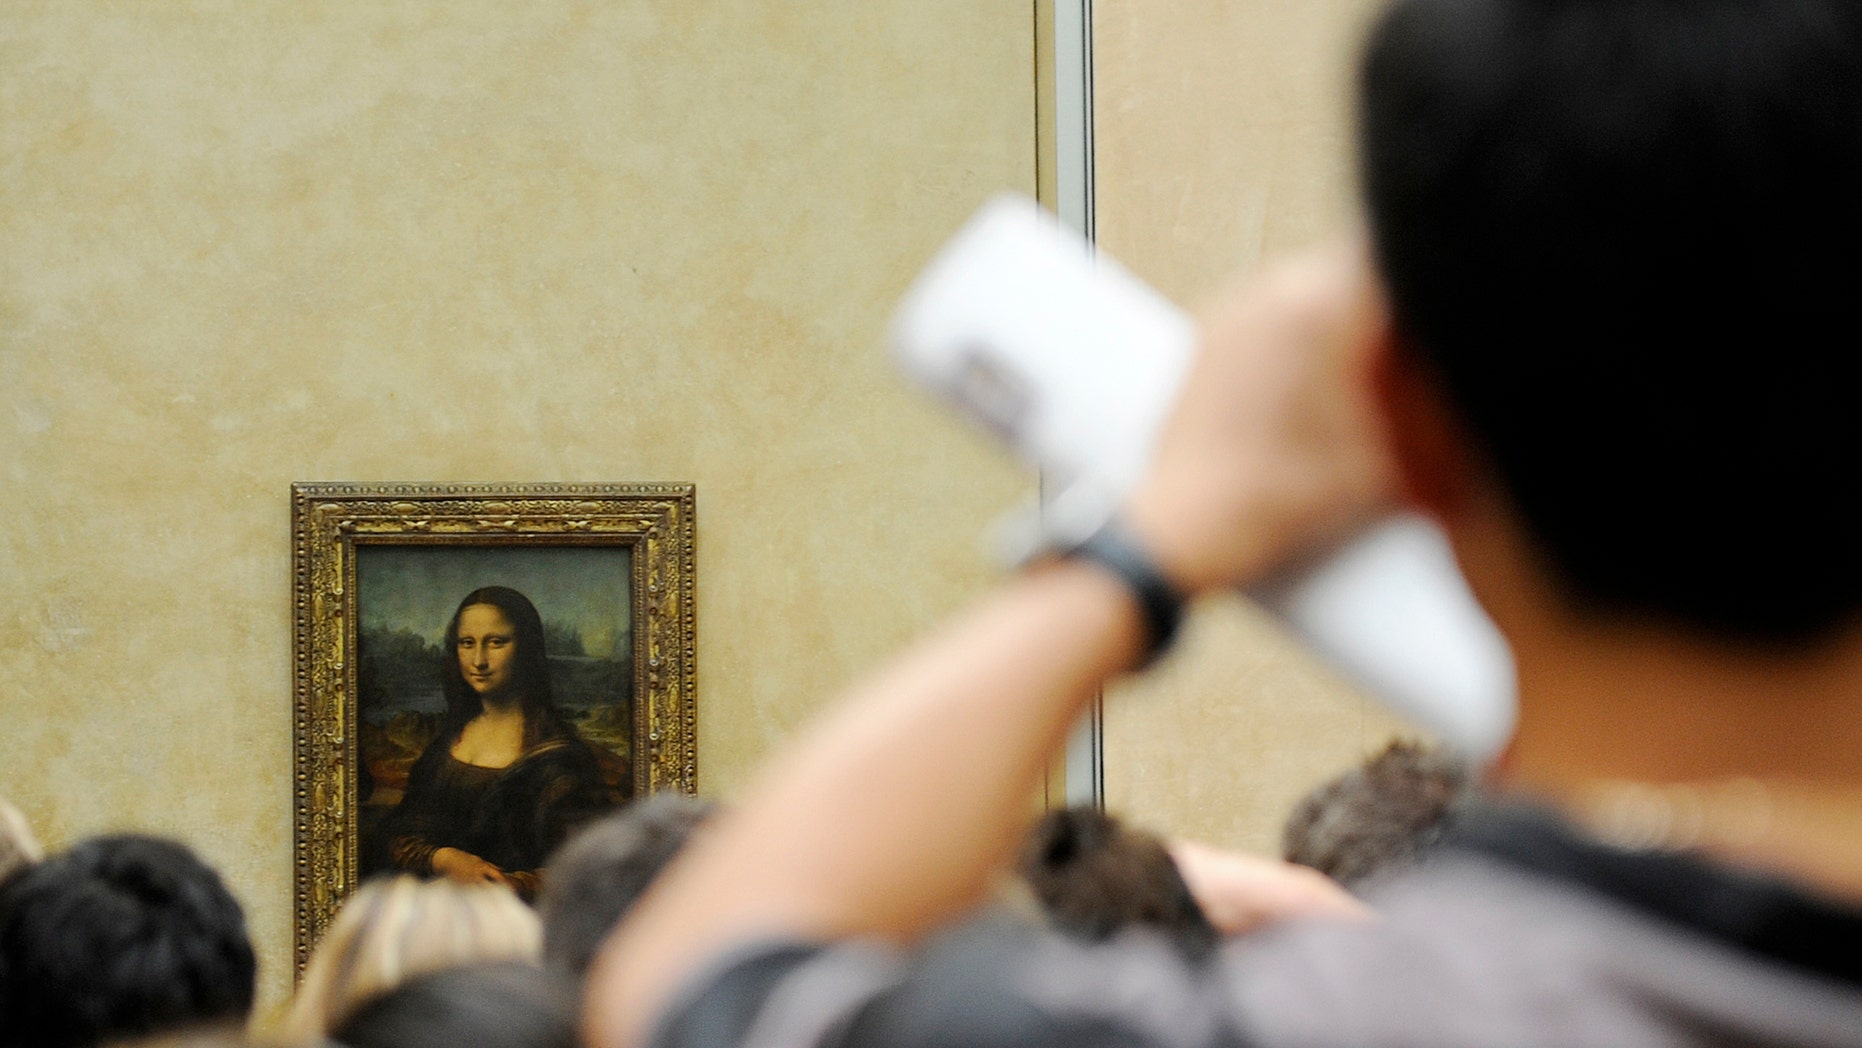 A tourist takes souvenir photos of Italian painter Leonardo da Vinci's famed portrait Mona Lisa at the Louvre Museum in Paris August 12, 2009. (REUTERS/Jacky Naegelen)